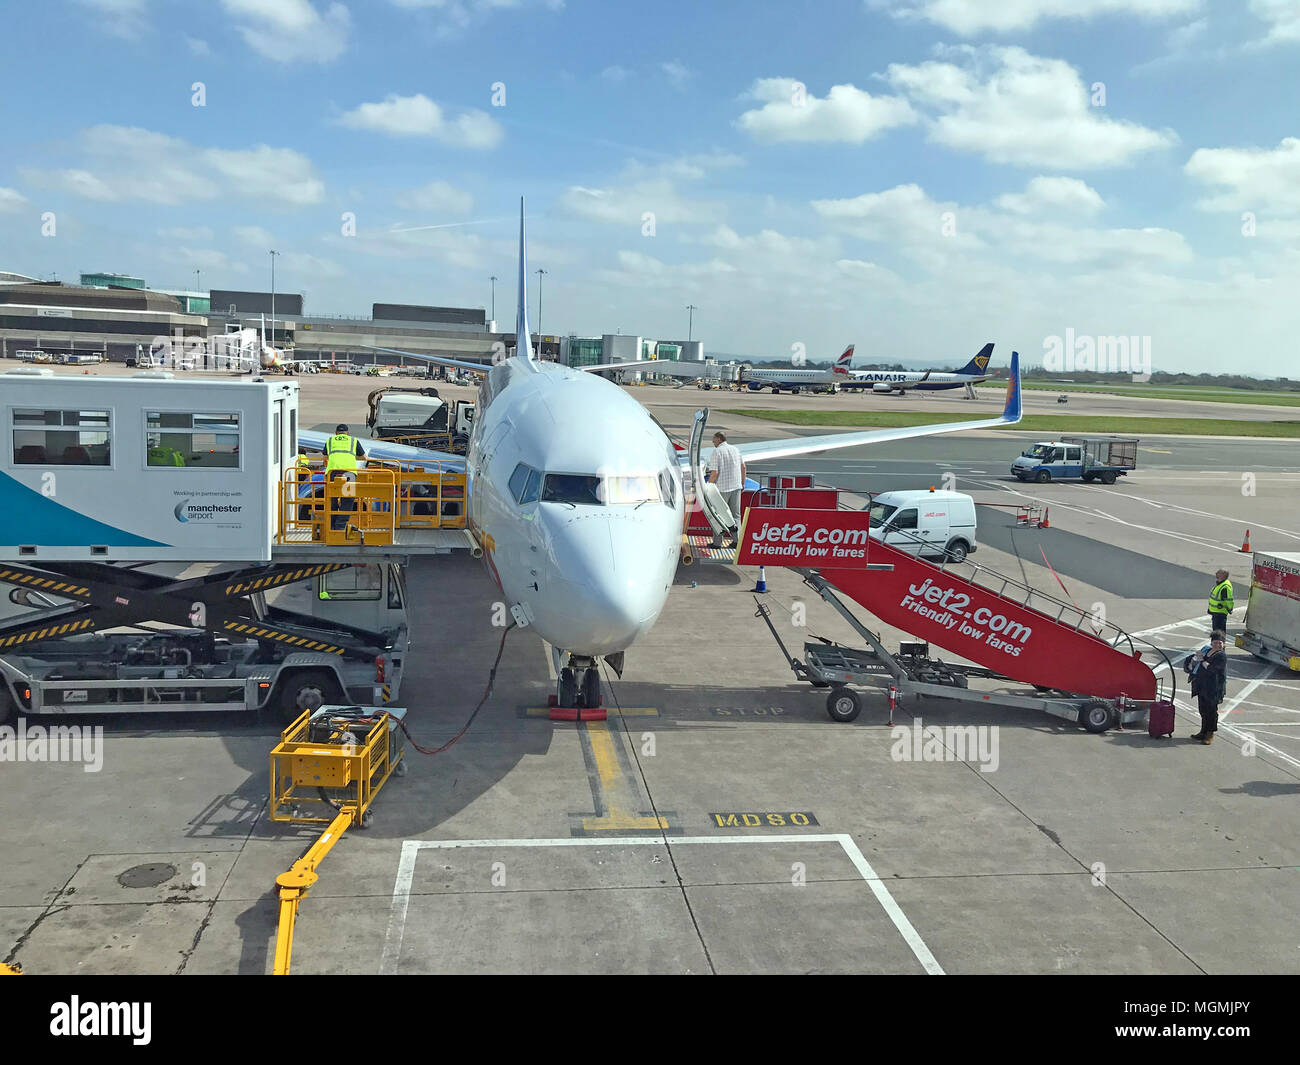 Jet2 Aircraft at Manchester Airport - Stock Image